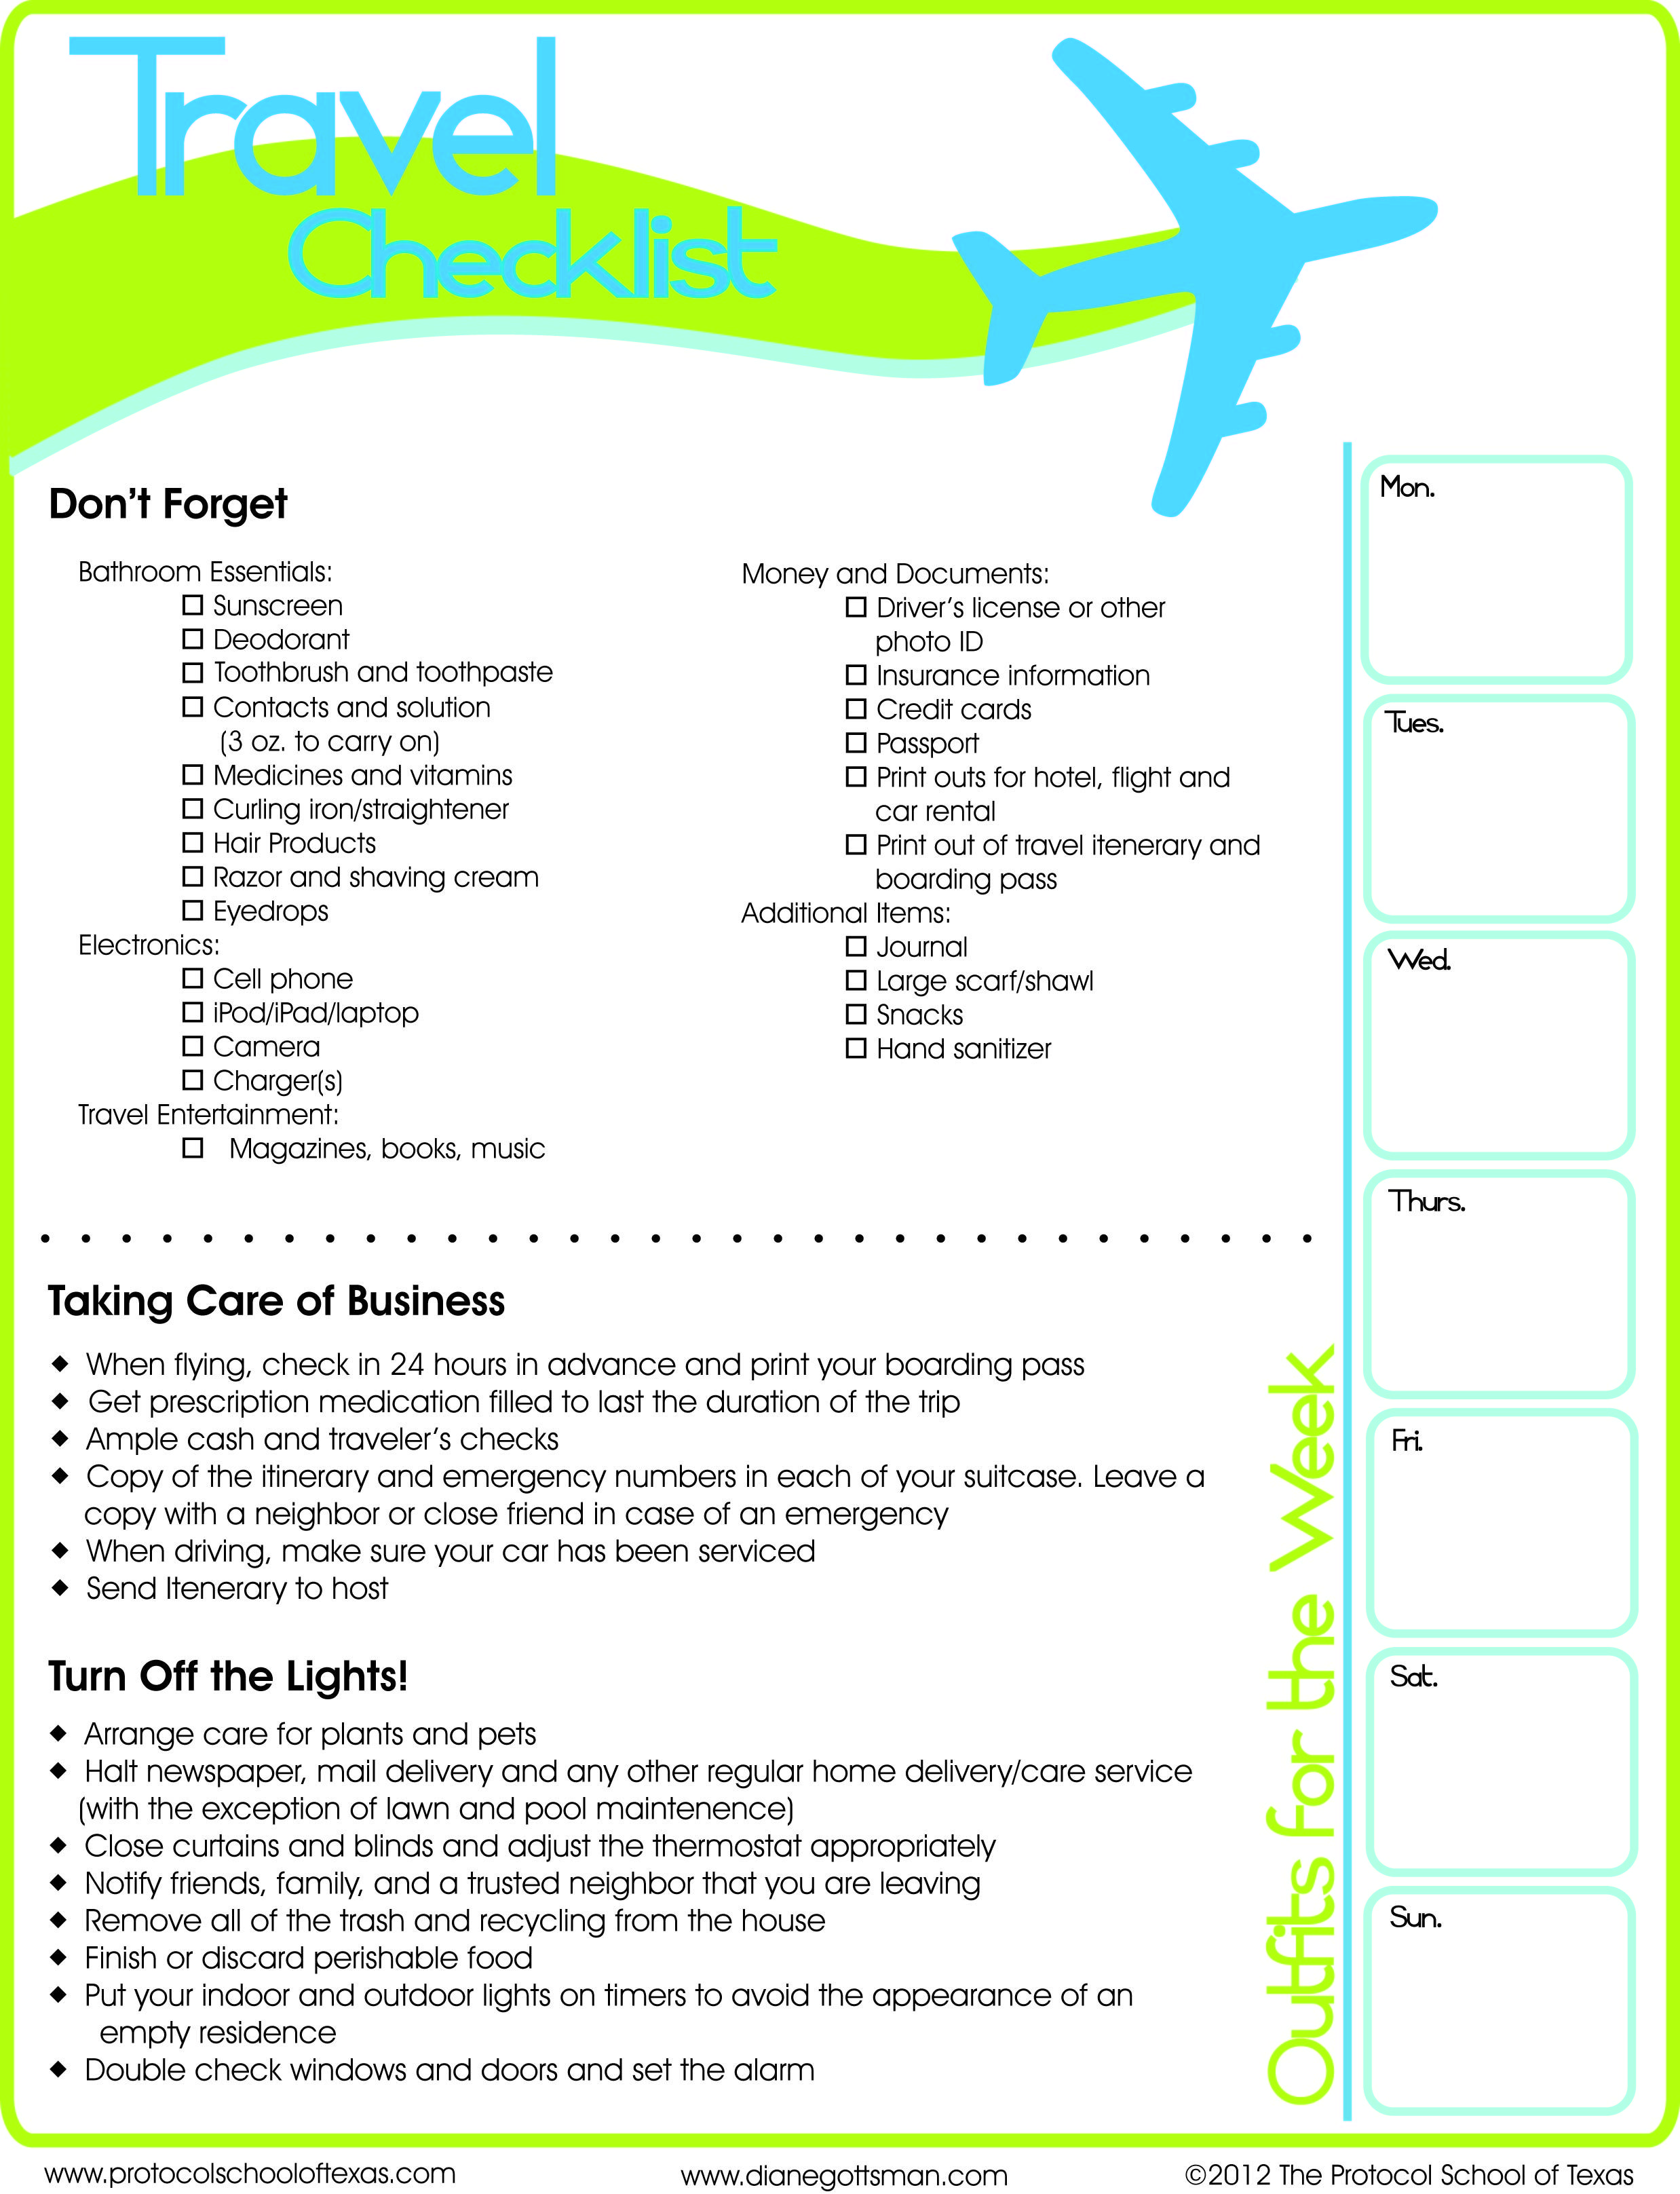 Travel Checklist Printable Travel Checklist Travel Tips Travel